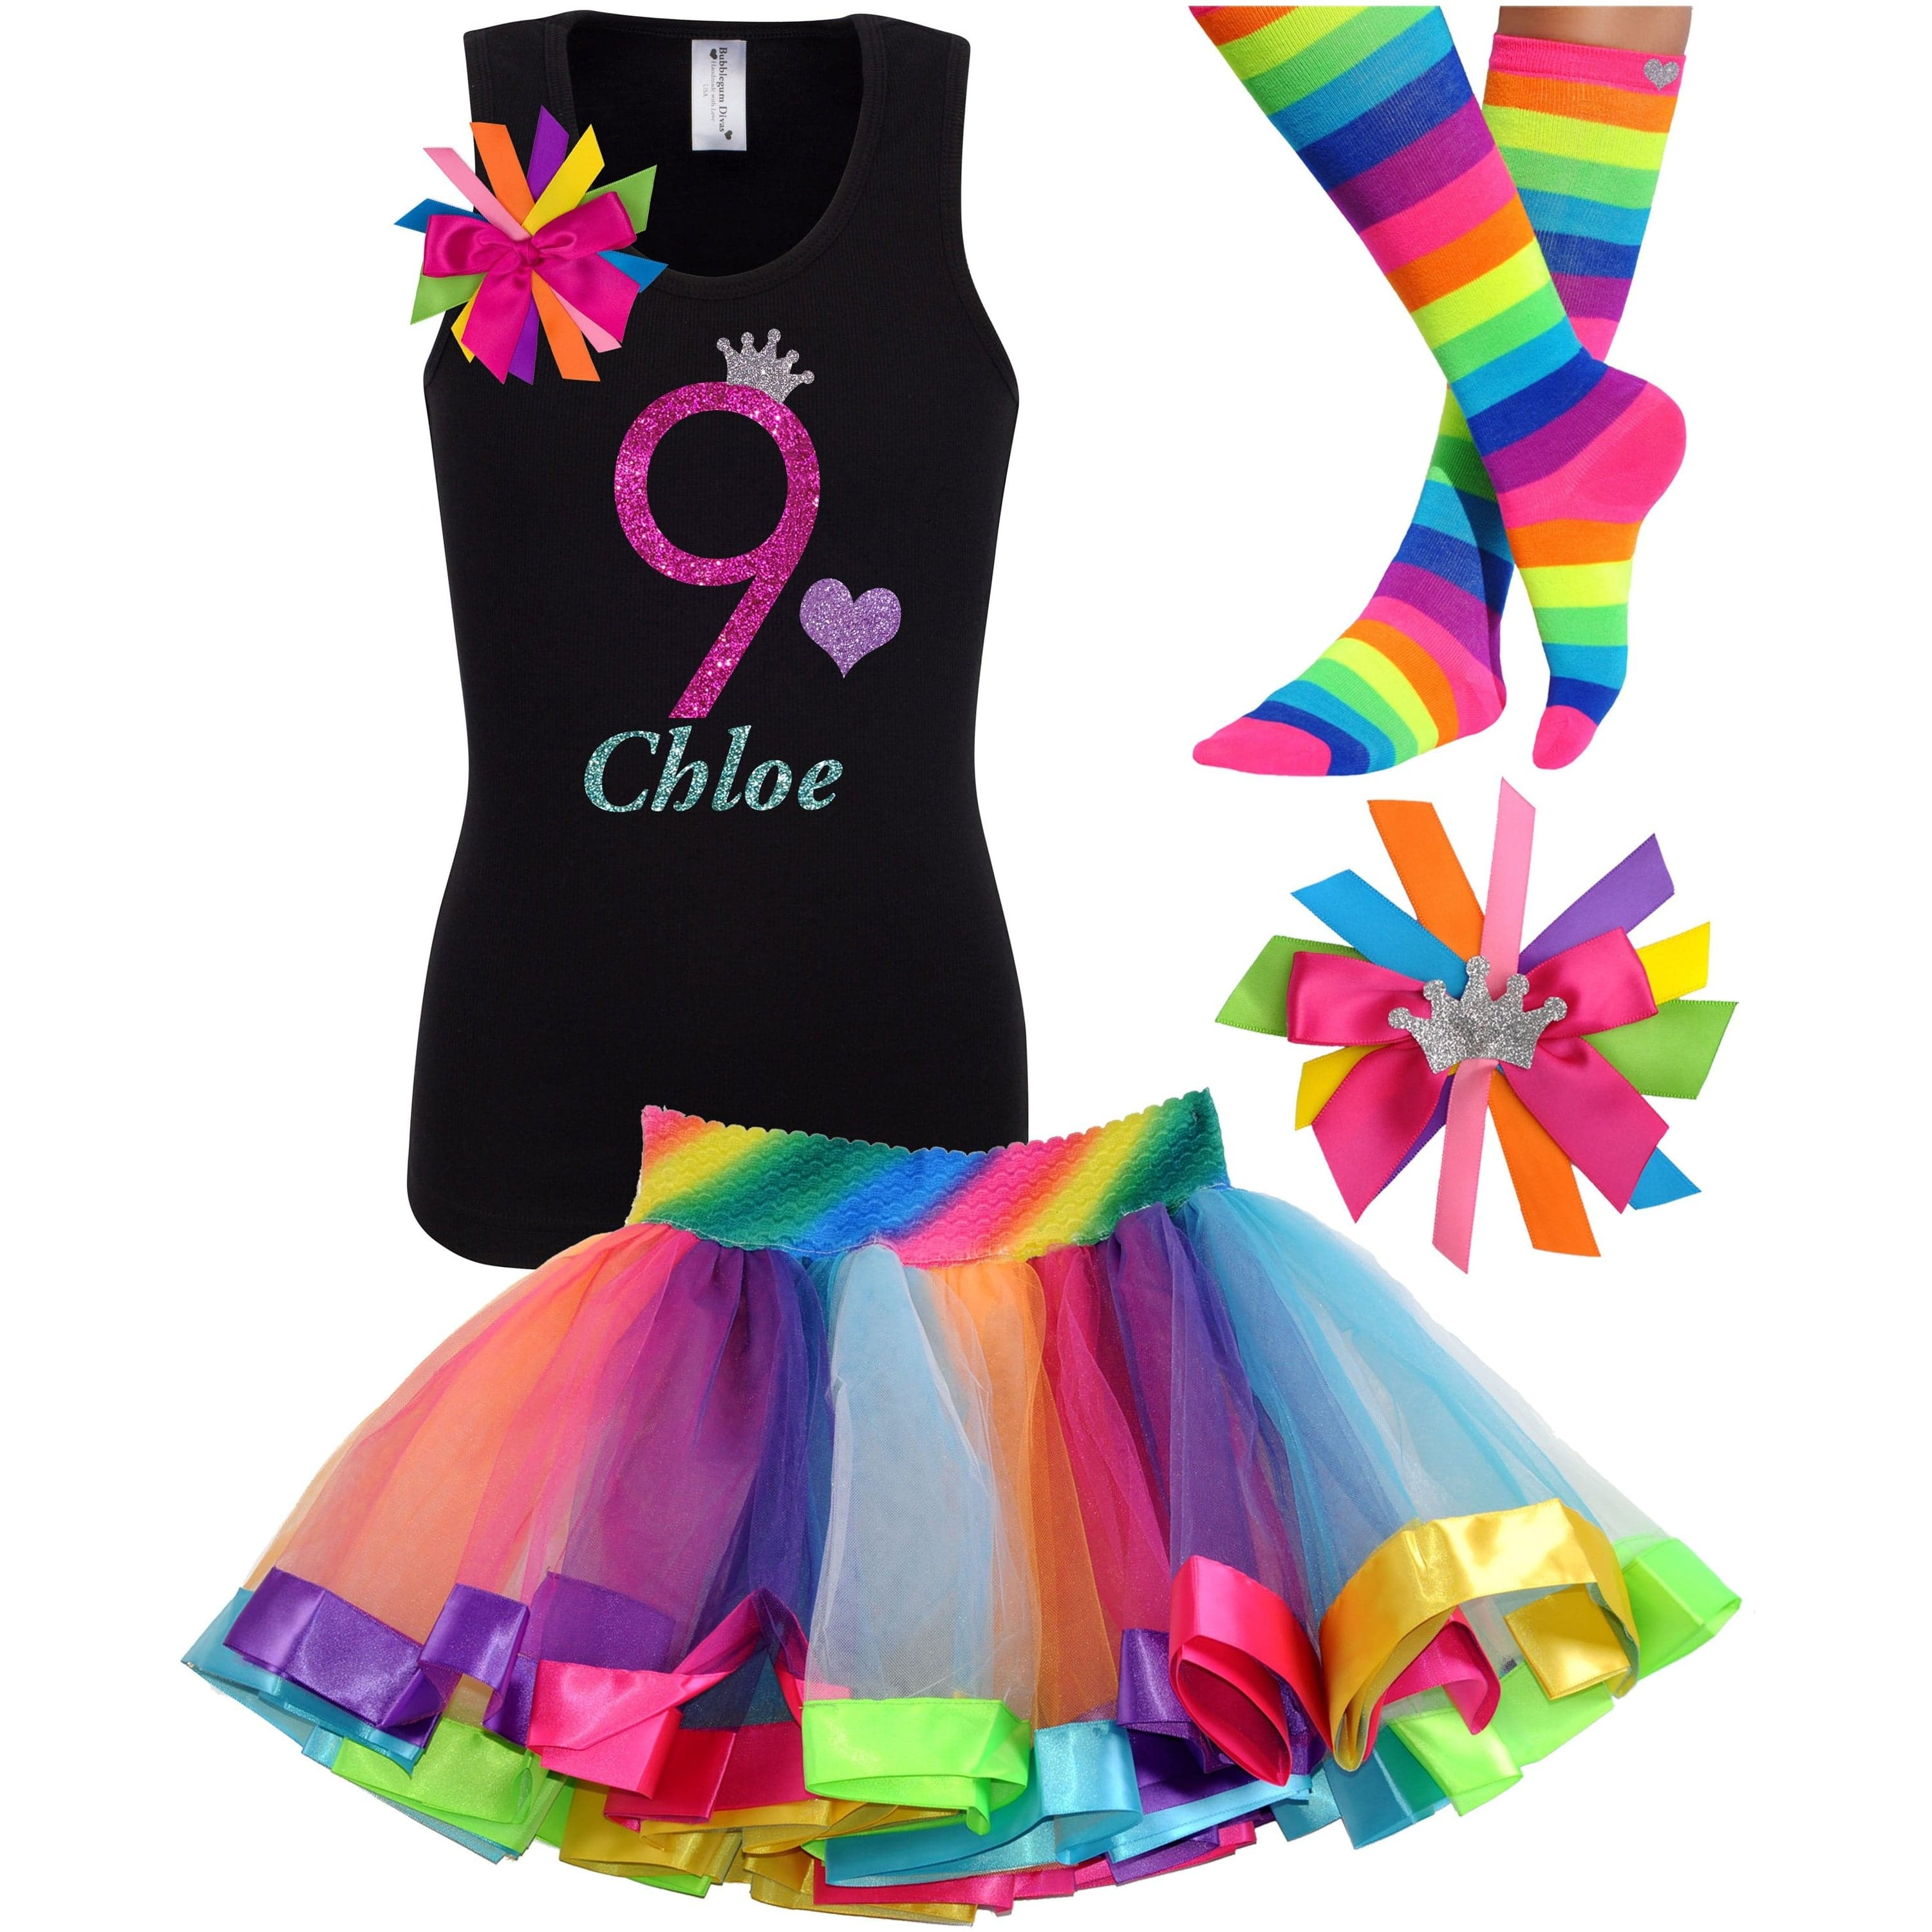 92eecb3fc05 9th Birthday Shirt Hot Pink Glitter Girls Rainbow Tutu Party Outfit 4PC Set  - Outfit -